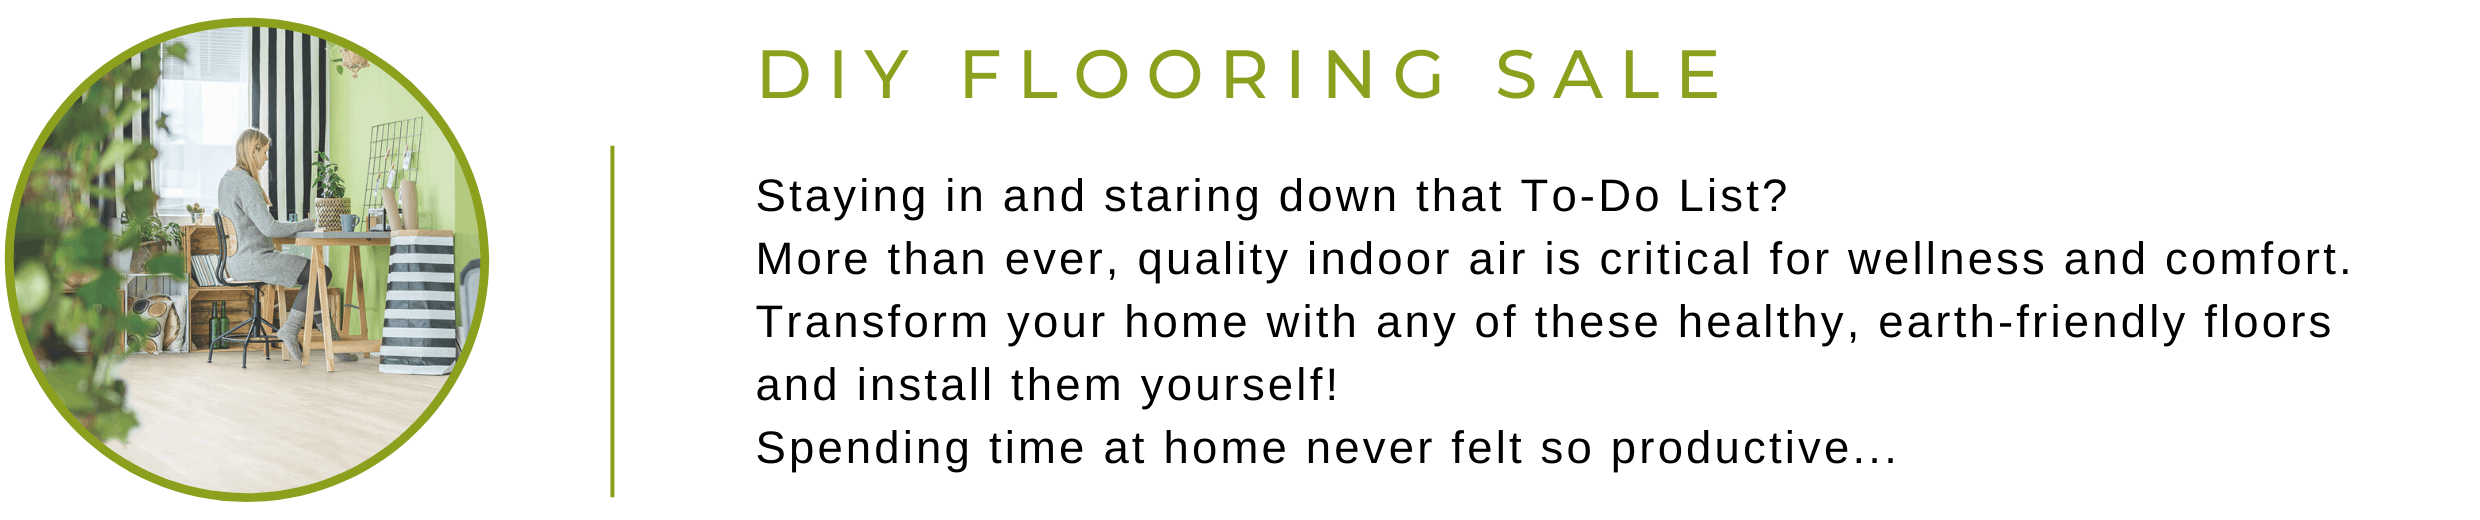 Staying in and staring down that To-Do list?  More than ever, quality indoor air is critical for wellness and comfort.  Transform your home with any of these healthy, earth-friendly floors and install them yourself!   Spending time at home never felt so productive...